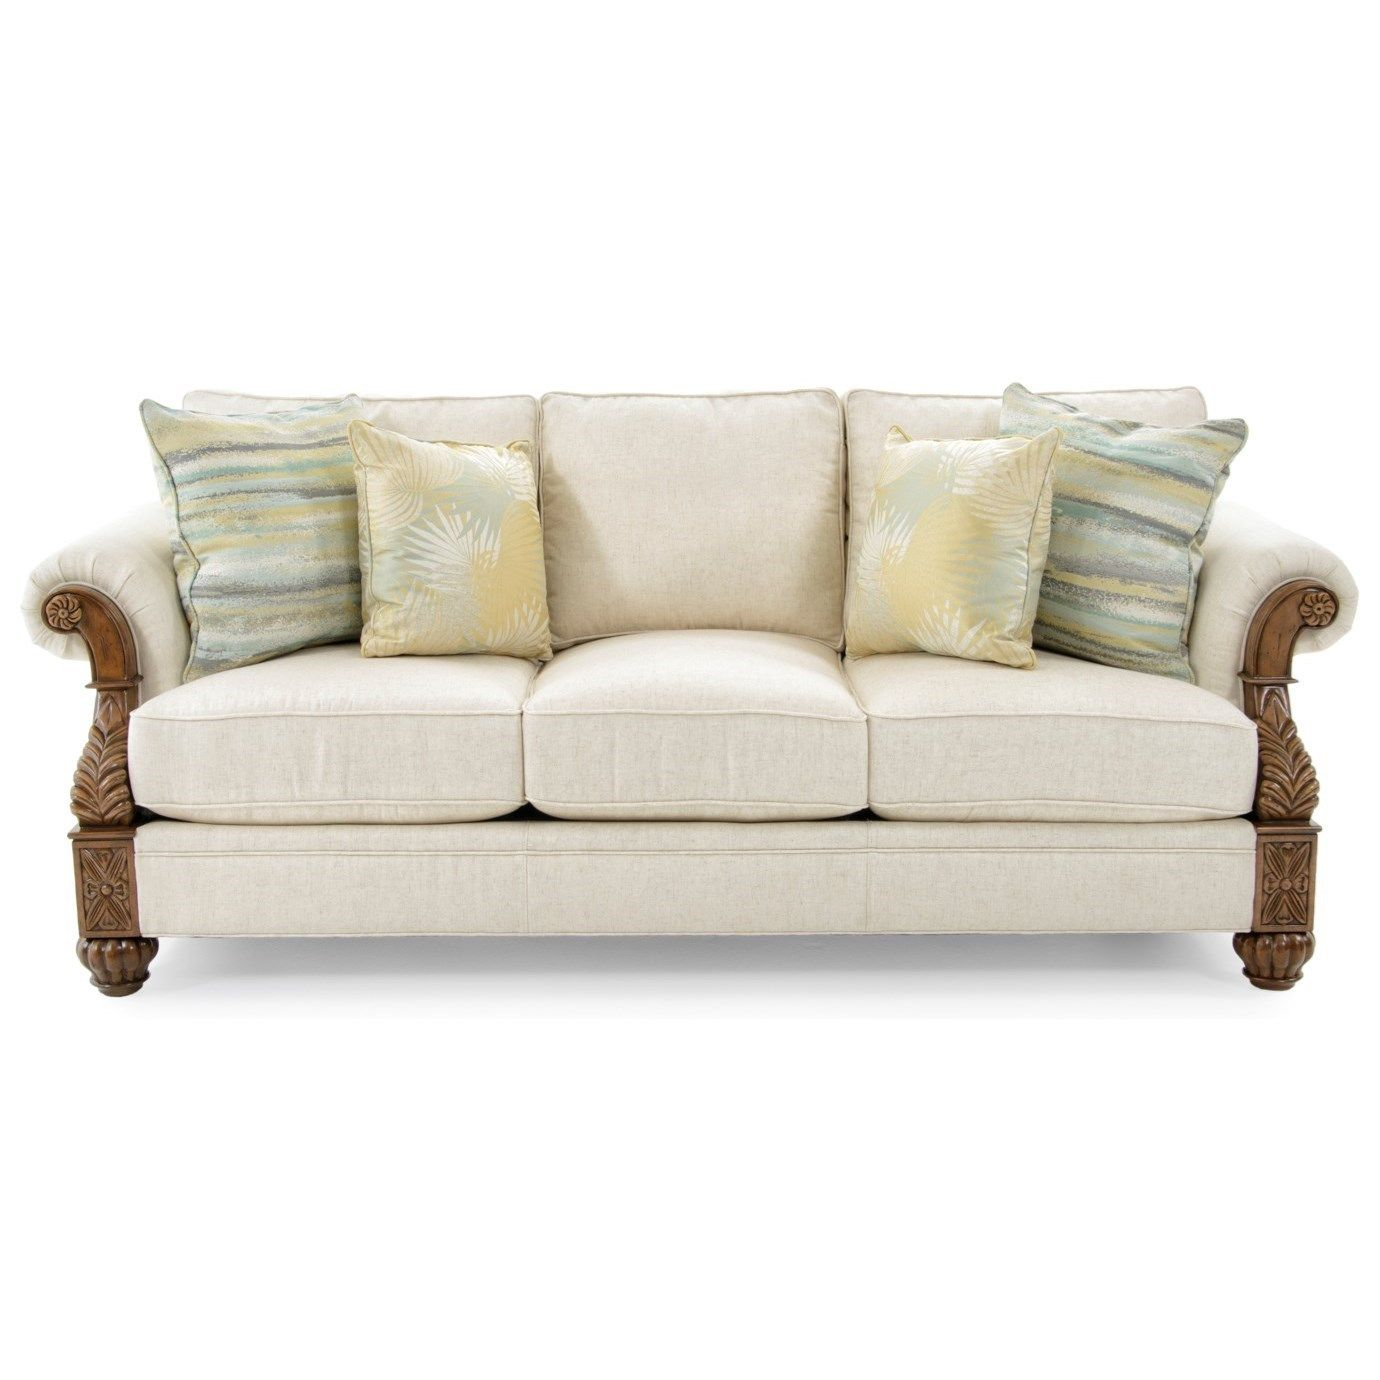 Tommy Bahama Upholstery Benoa Harbour Sofa Married Fabric By Tommy Bahama Home At Baer S Furniture Tommy Bahama Home